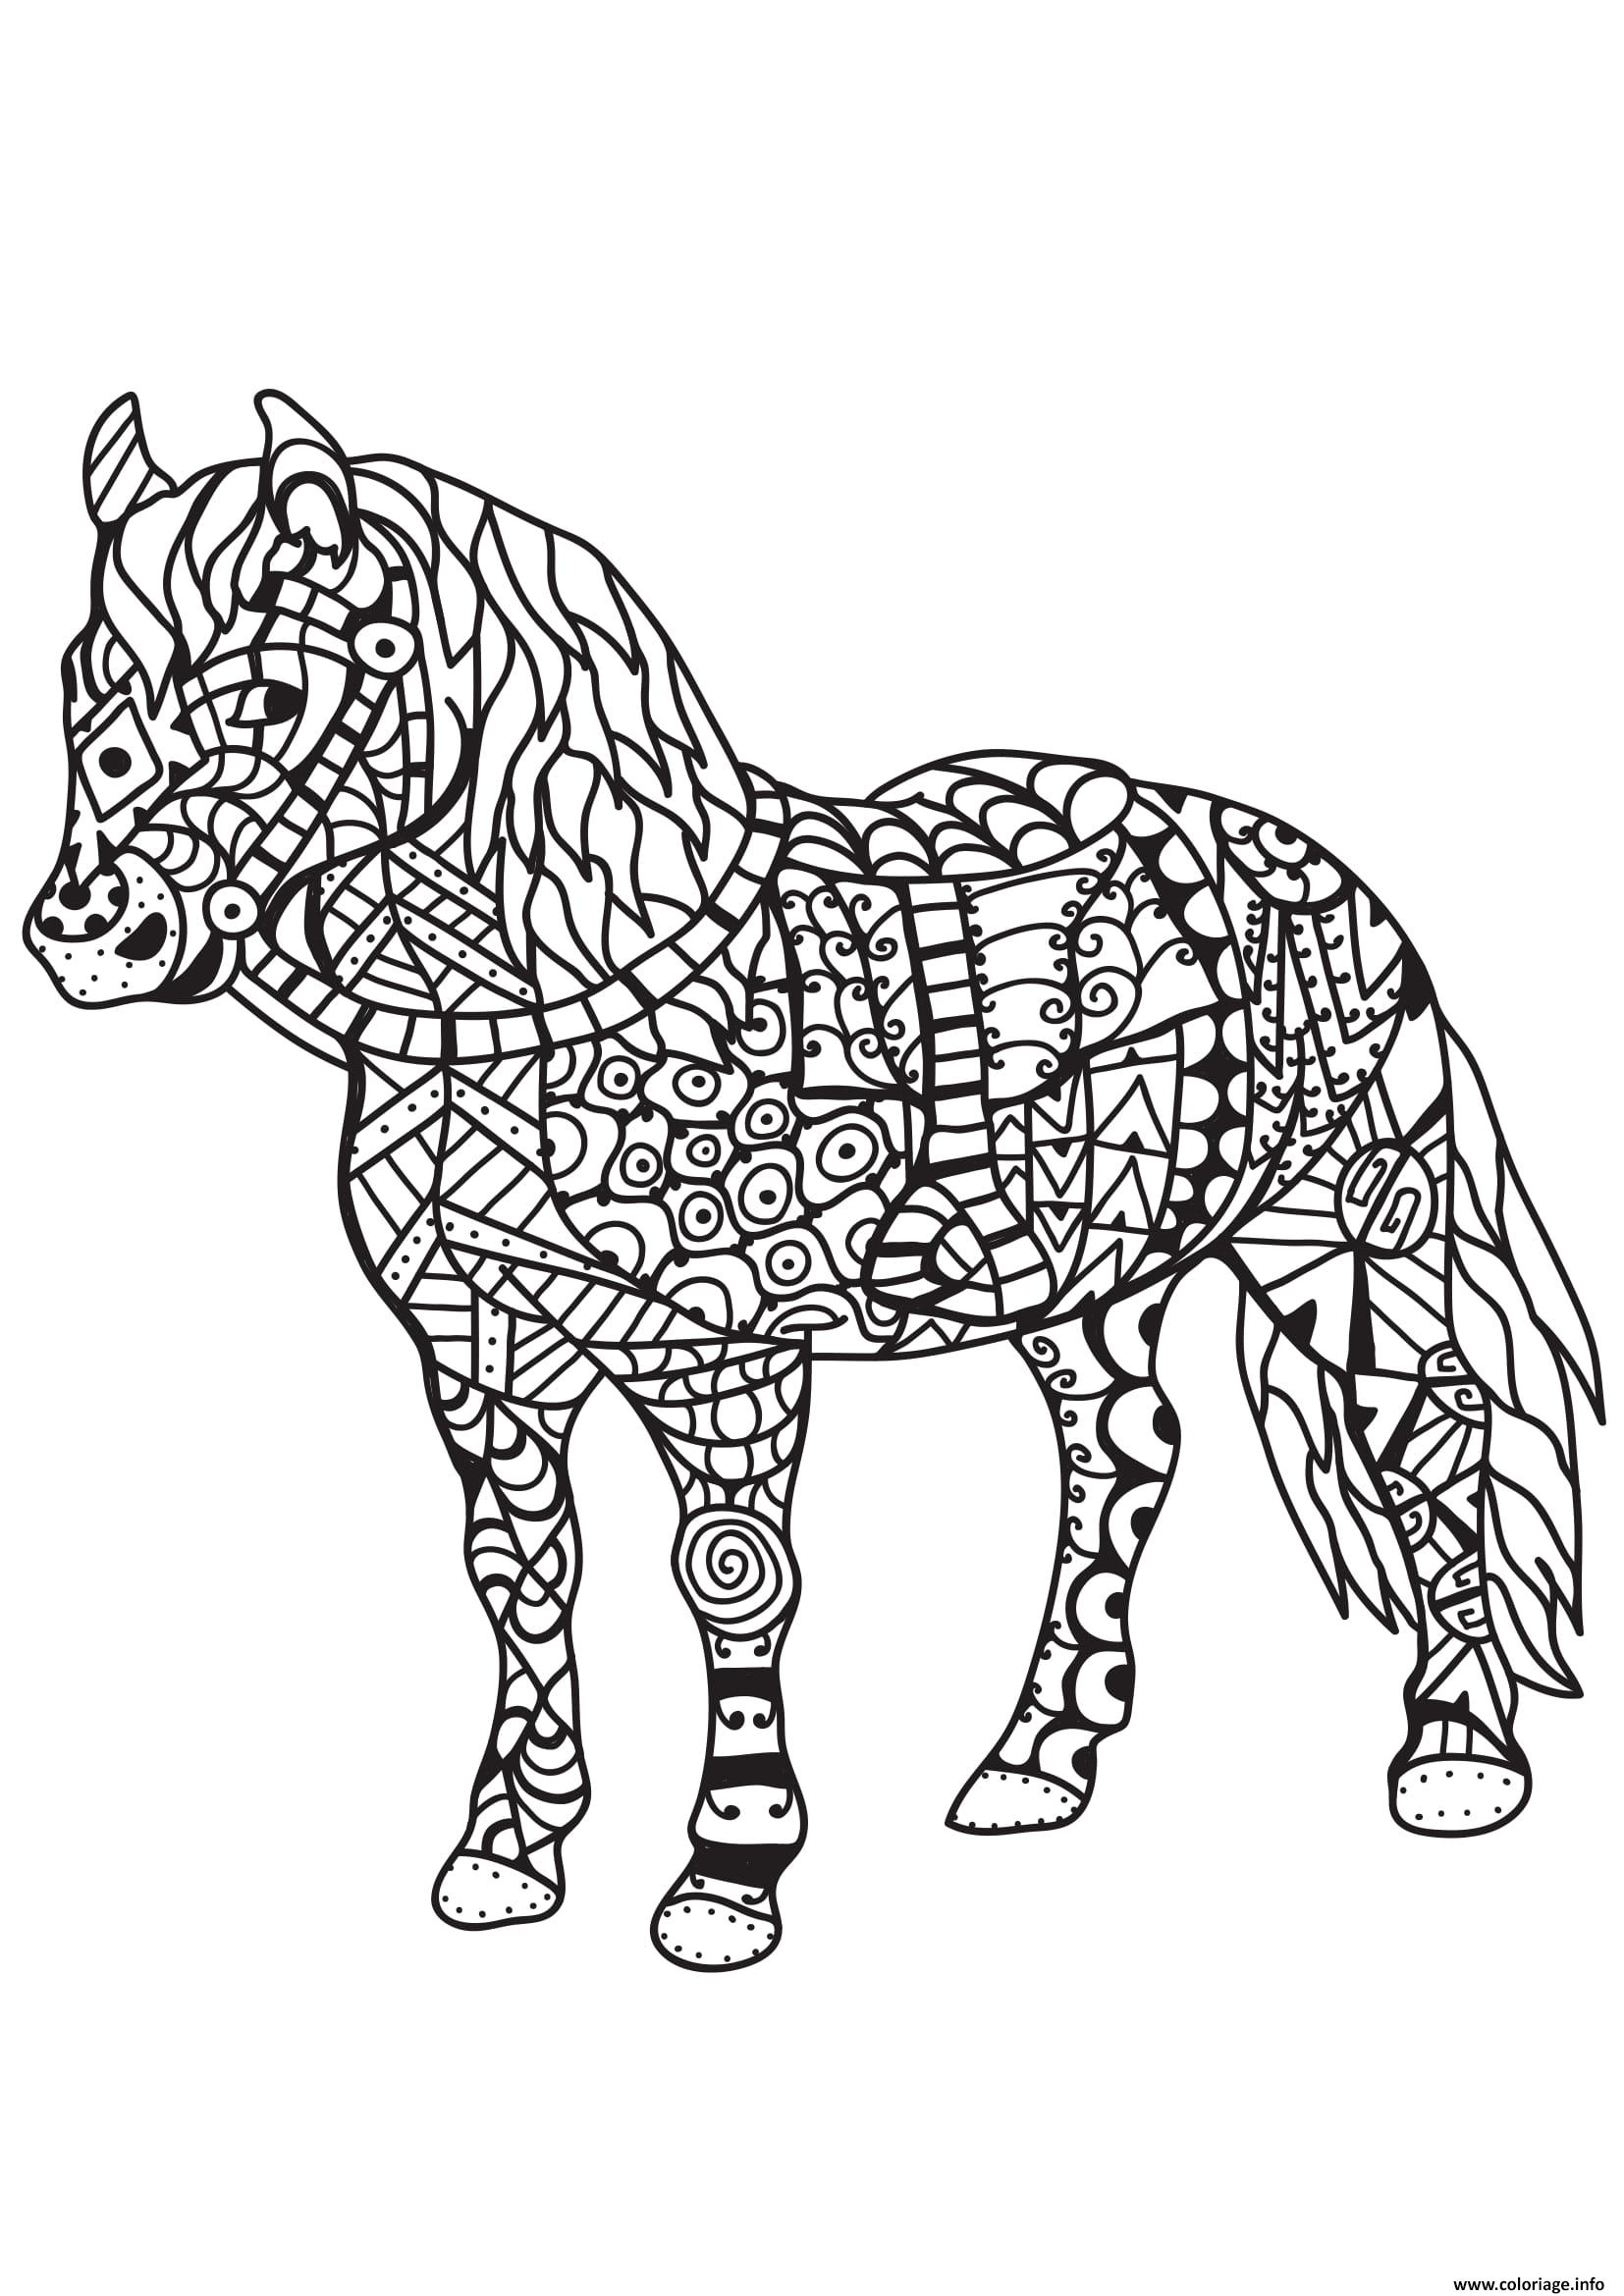 Coloriage Cheval Zen.Coloriage Adulte Cheval Zentangle 11 Jecolorie Com